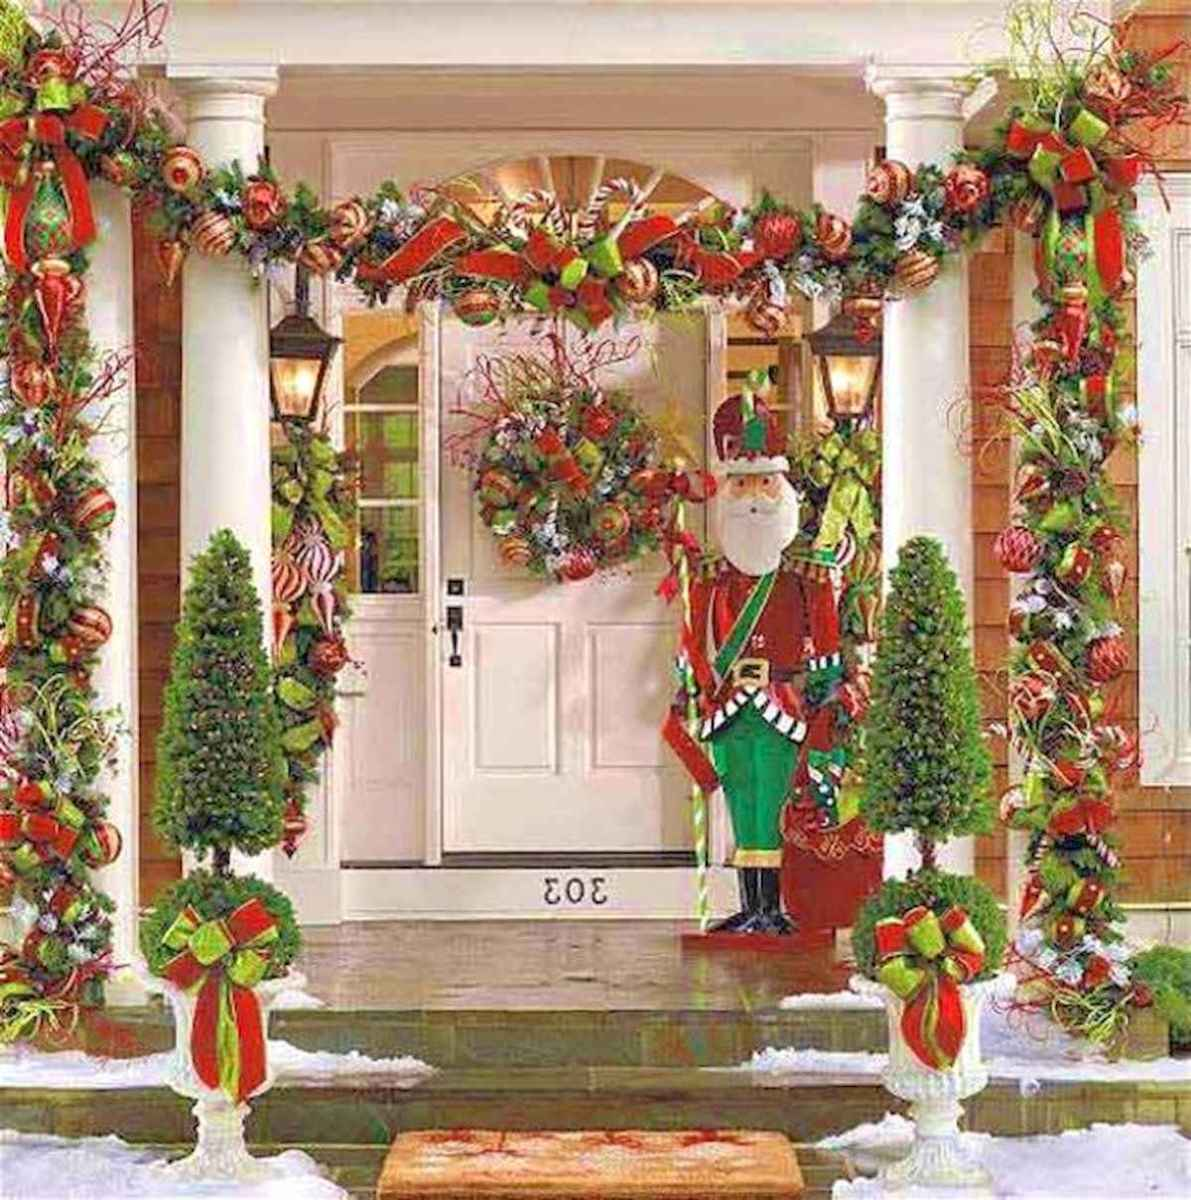 50 Christmas Front Porch Decor Ideas And Makeover (19)